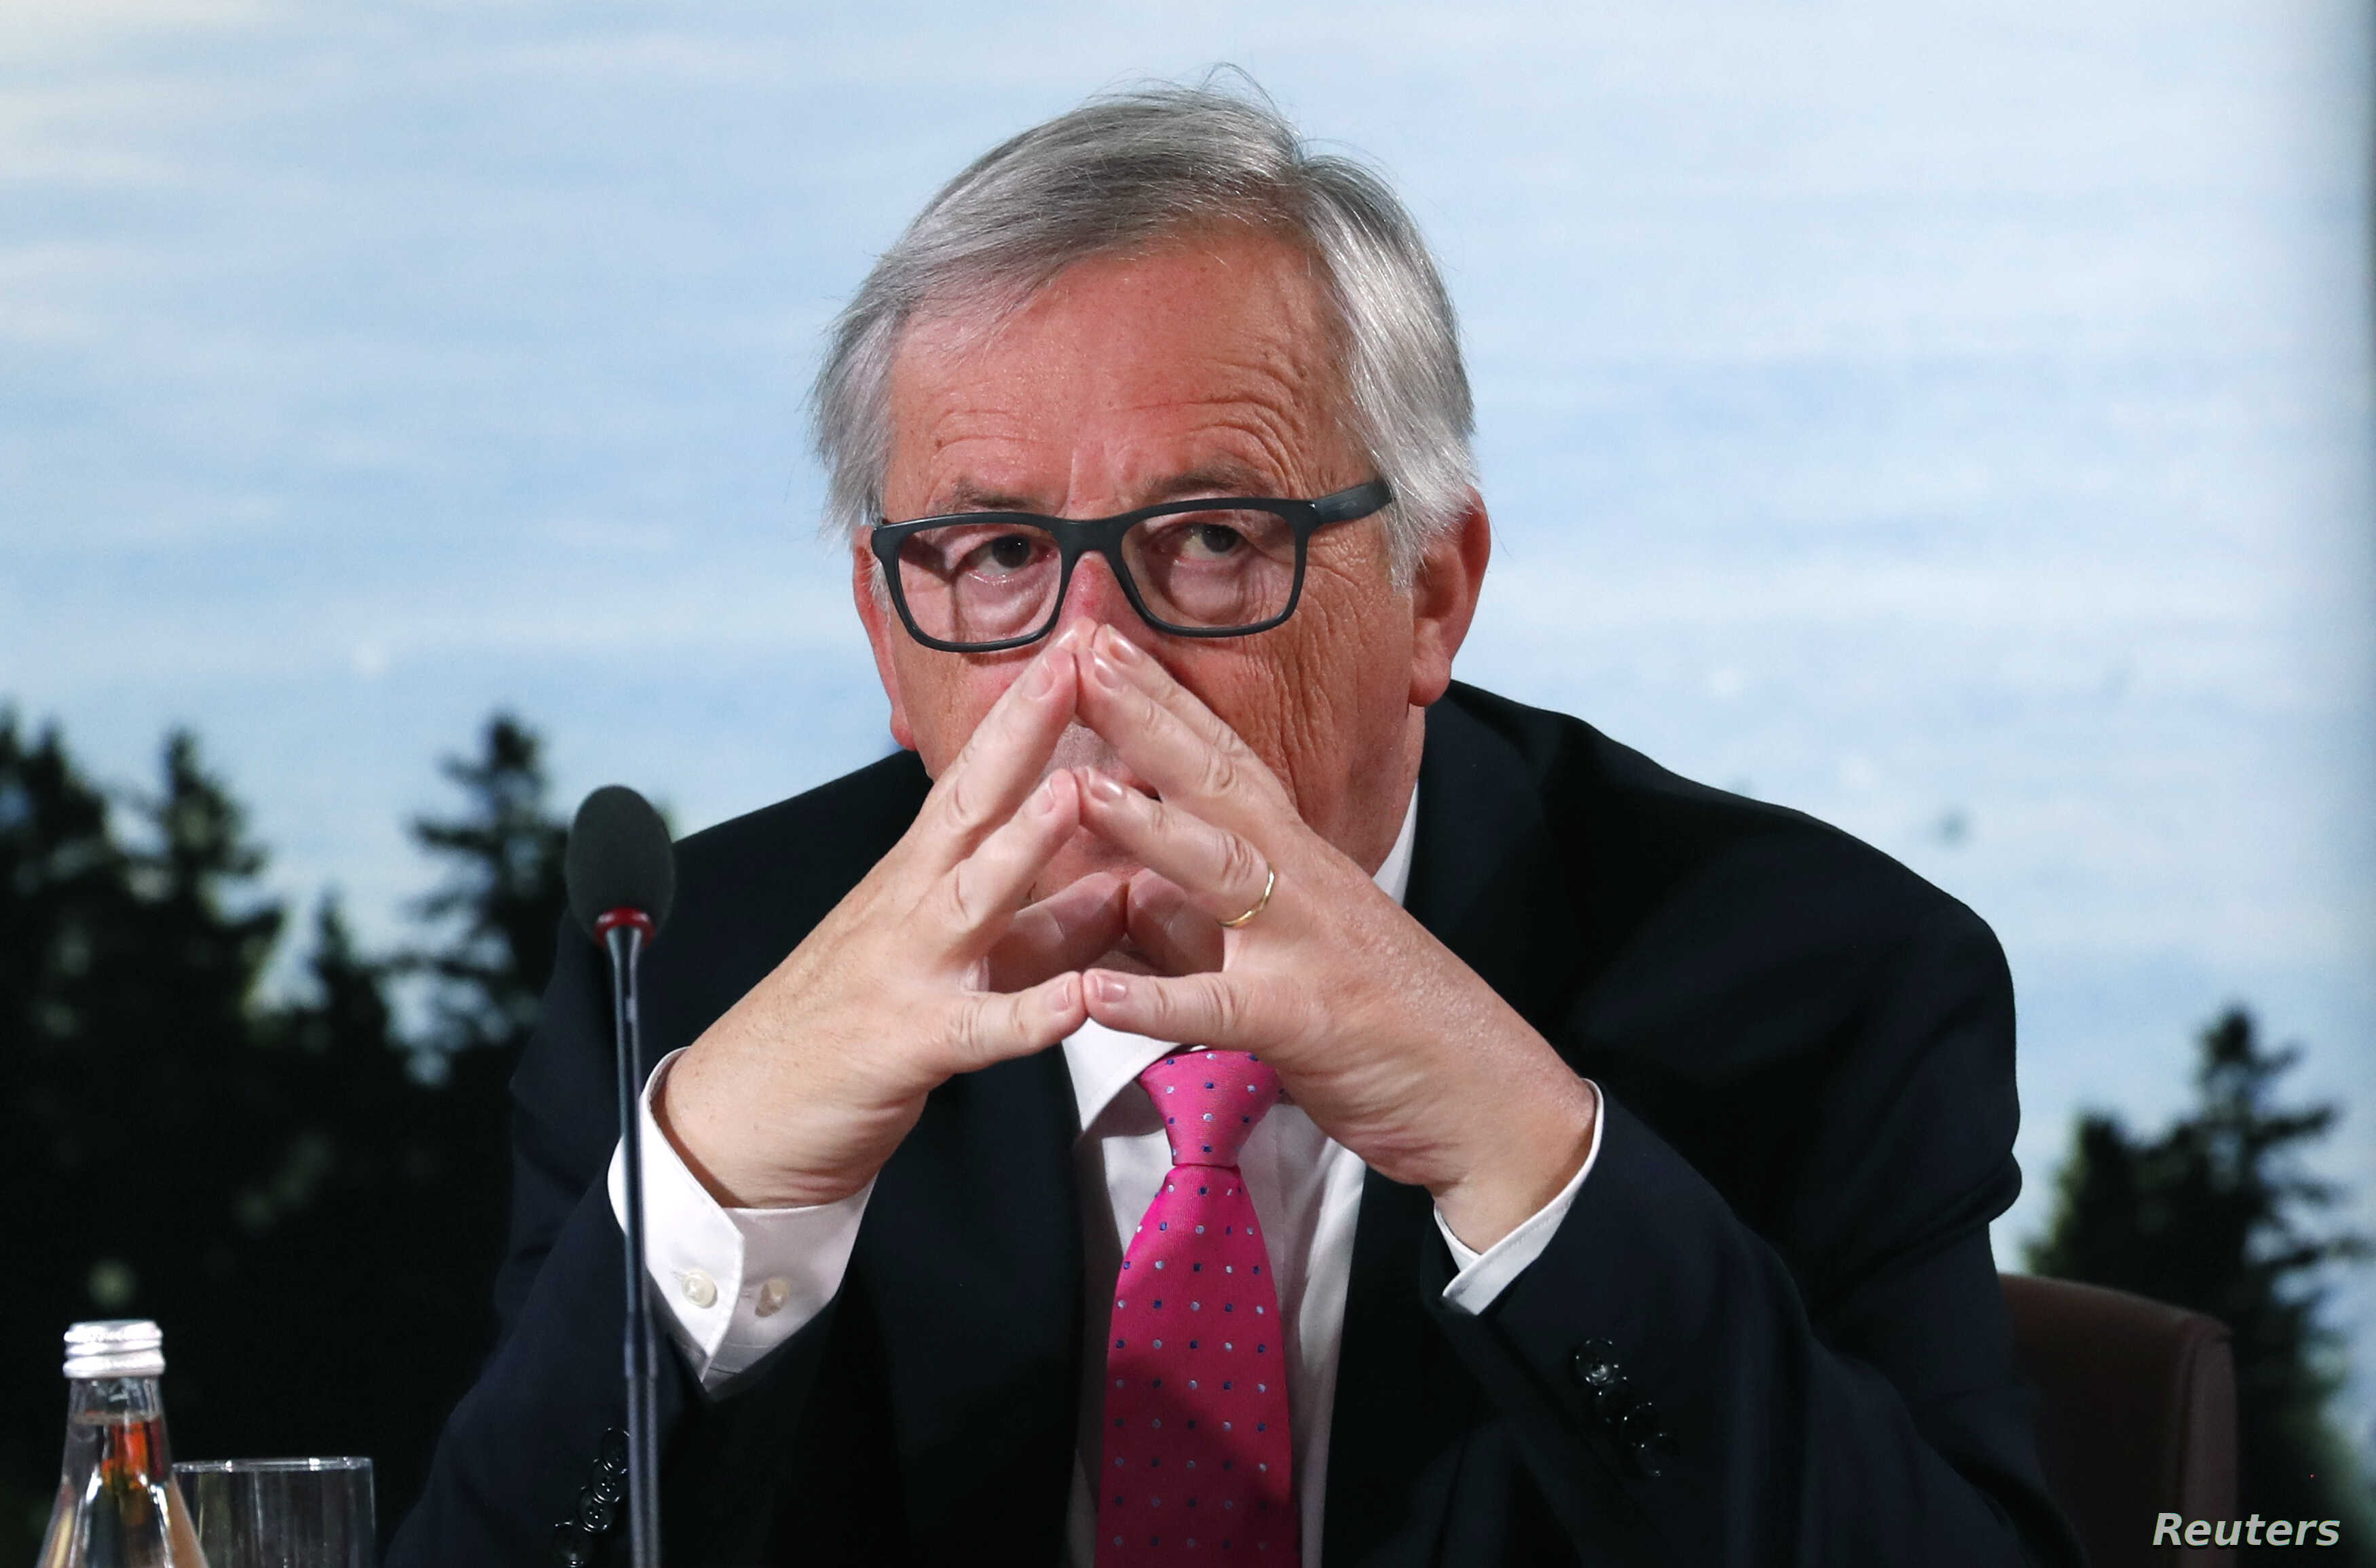 FILE - European Commission President Jean-Claude Juncker attends the G-7 summit in the Charlevoix city of La Malbaie, Quebec, Canada, June 9, 2018.